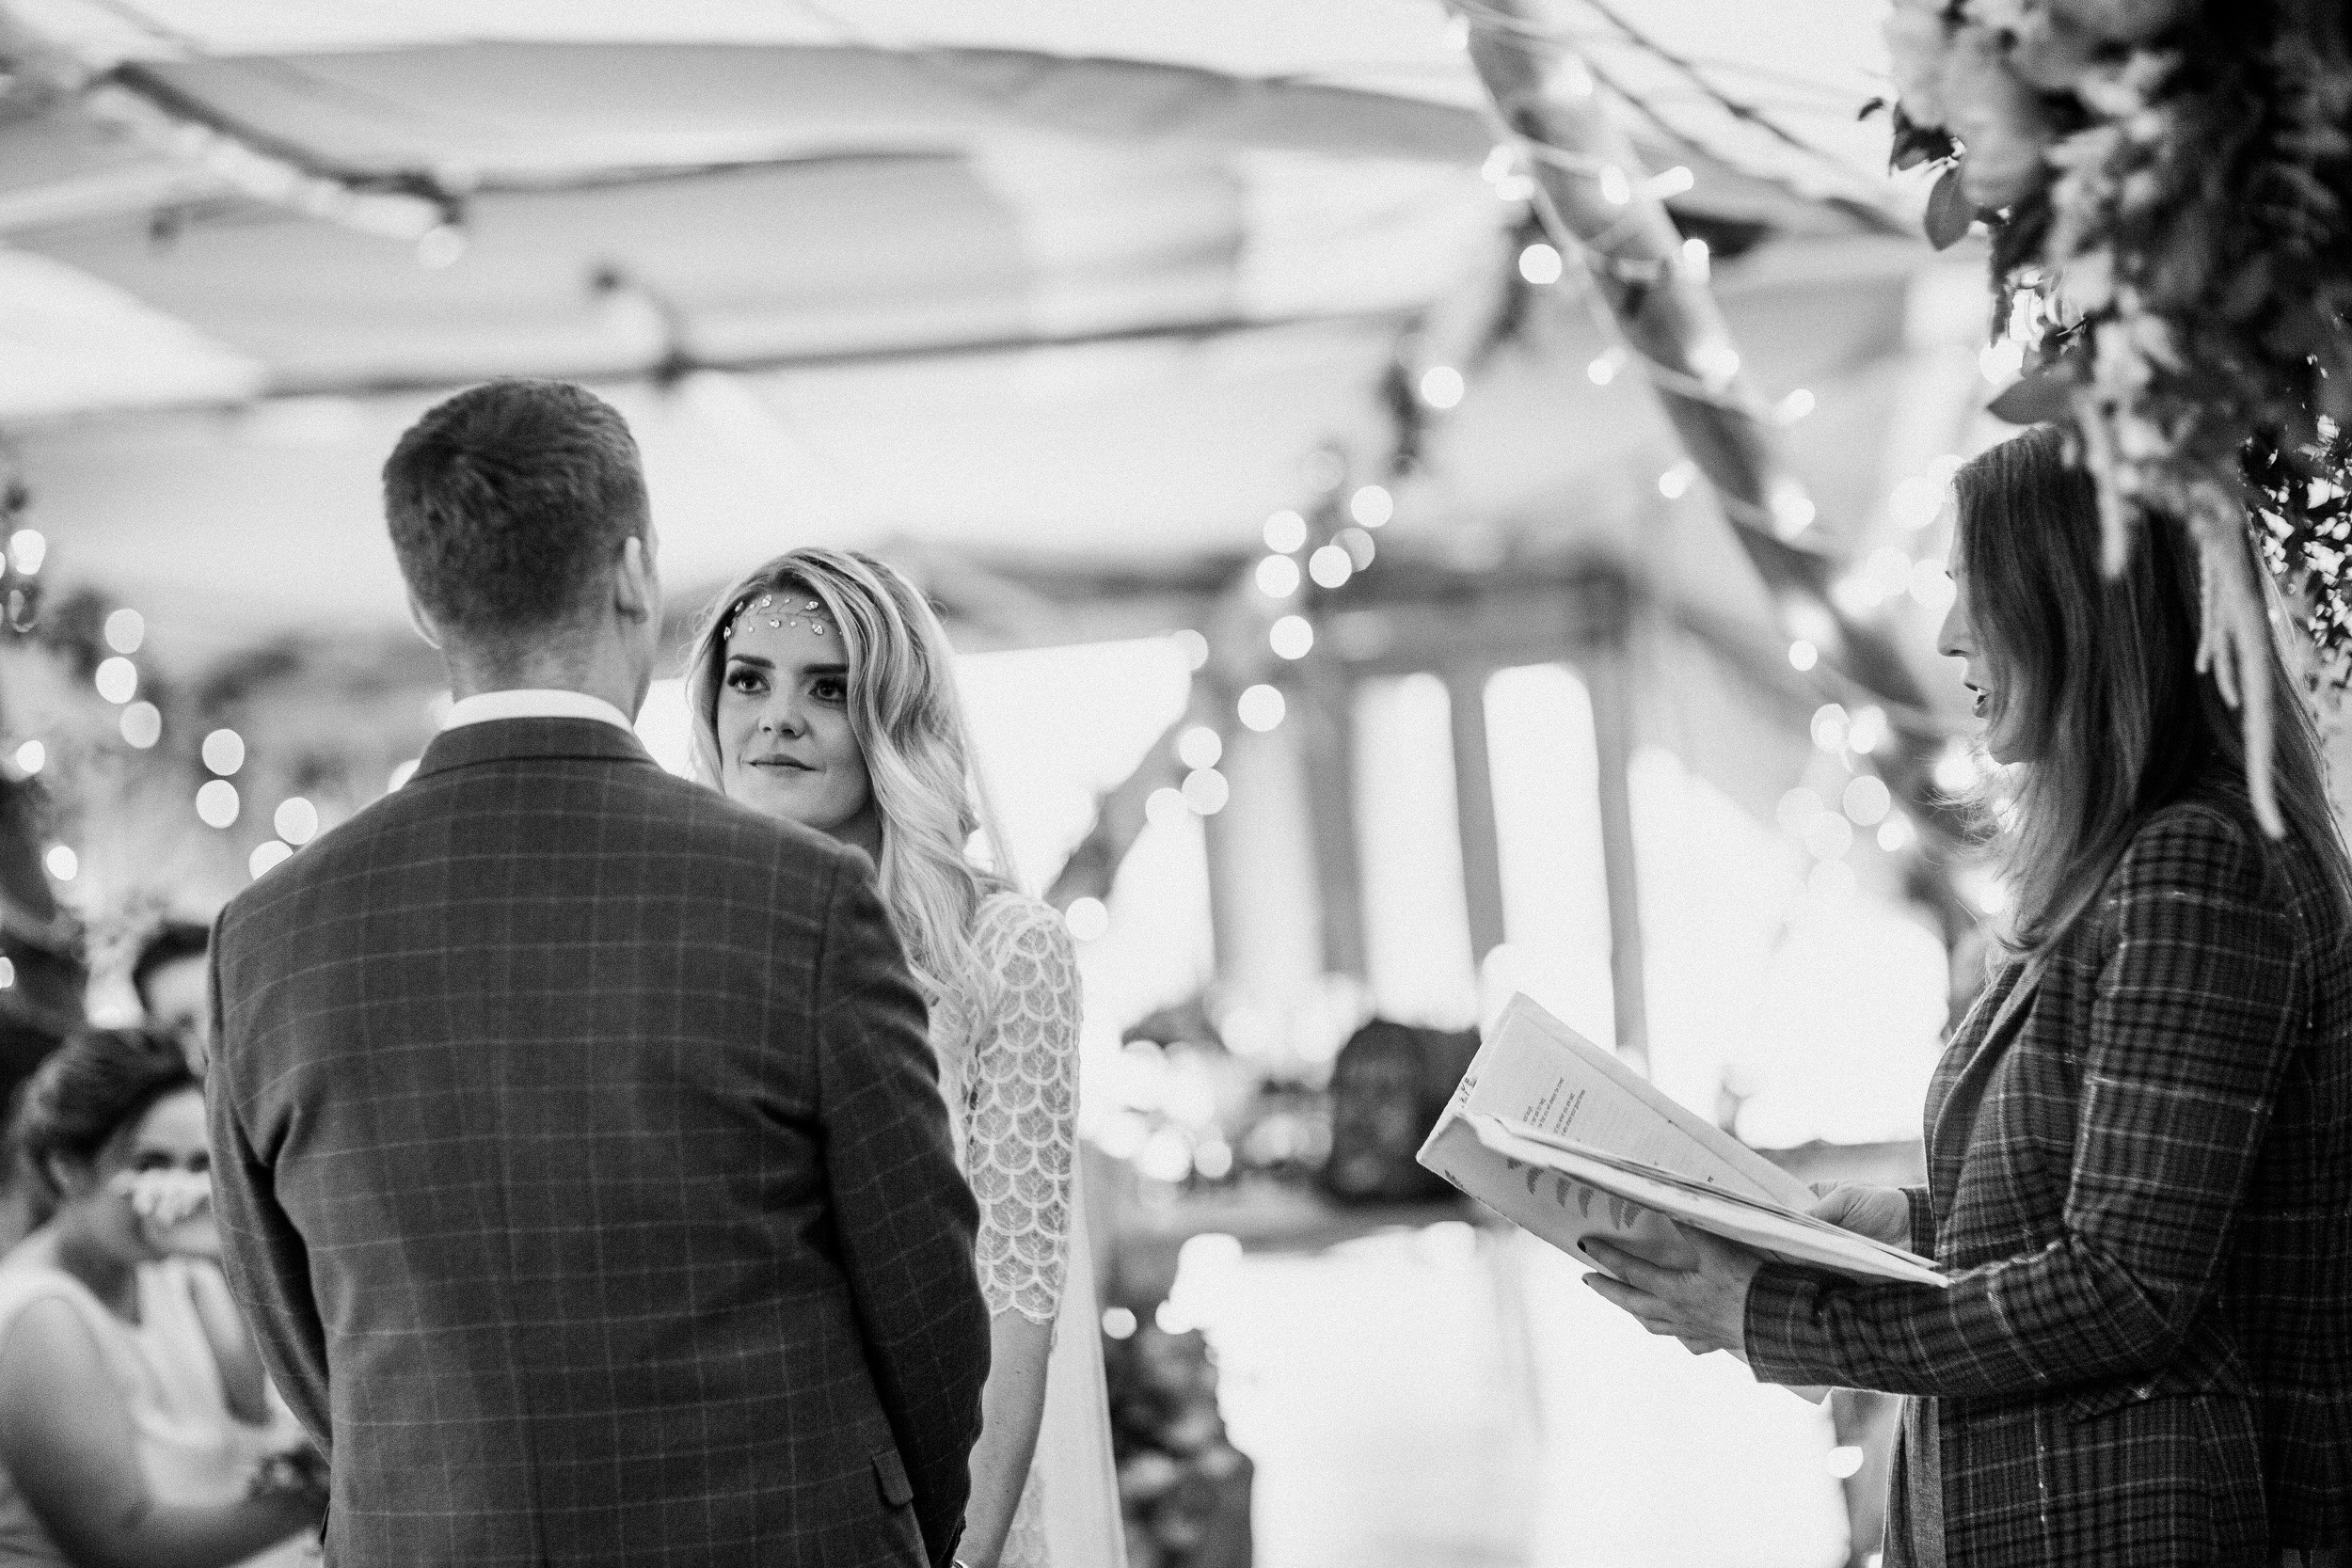 Gemma-Bohemian-Outdoor-Tipi-Wedding-Laid-Back-Relaxed-Family-Wedding-Kate-Beaumont-Astilbe-by-S6-Photography-Sheffield-10.jpg